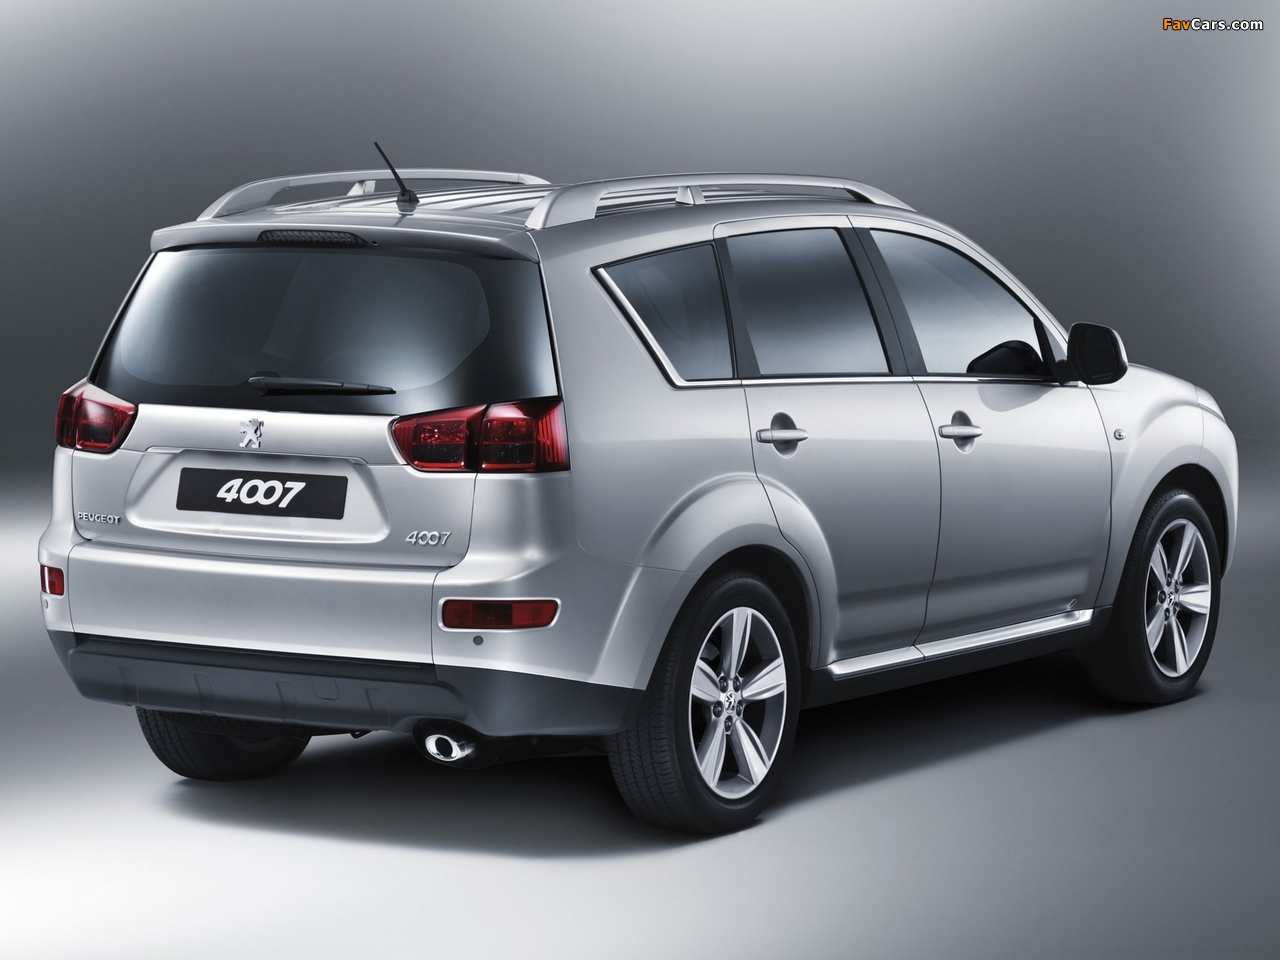 Pictures of Peugeot 4007 2007 (1280 x 960)